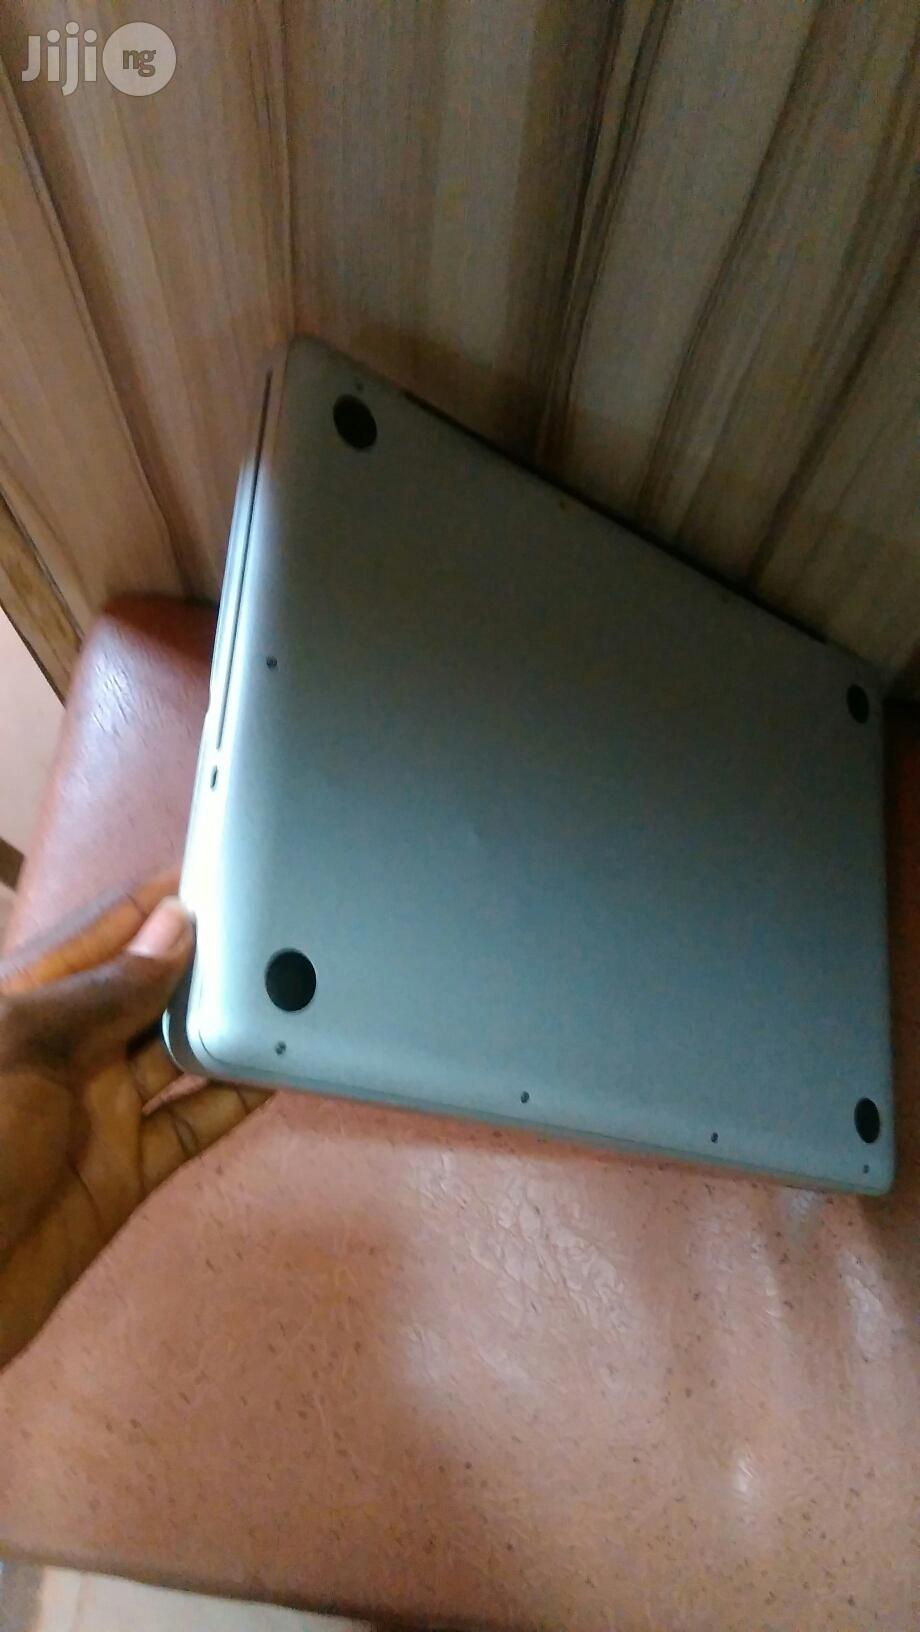 Laptop Apple MacBook Pro 8GB Intel Core I7 HDD 750GB | Laptops & Computers for sale in Wuse, Abuja (FCT) State, Nigeria